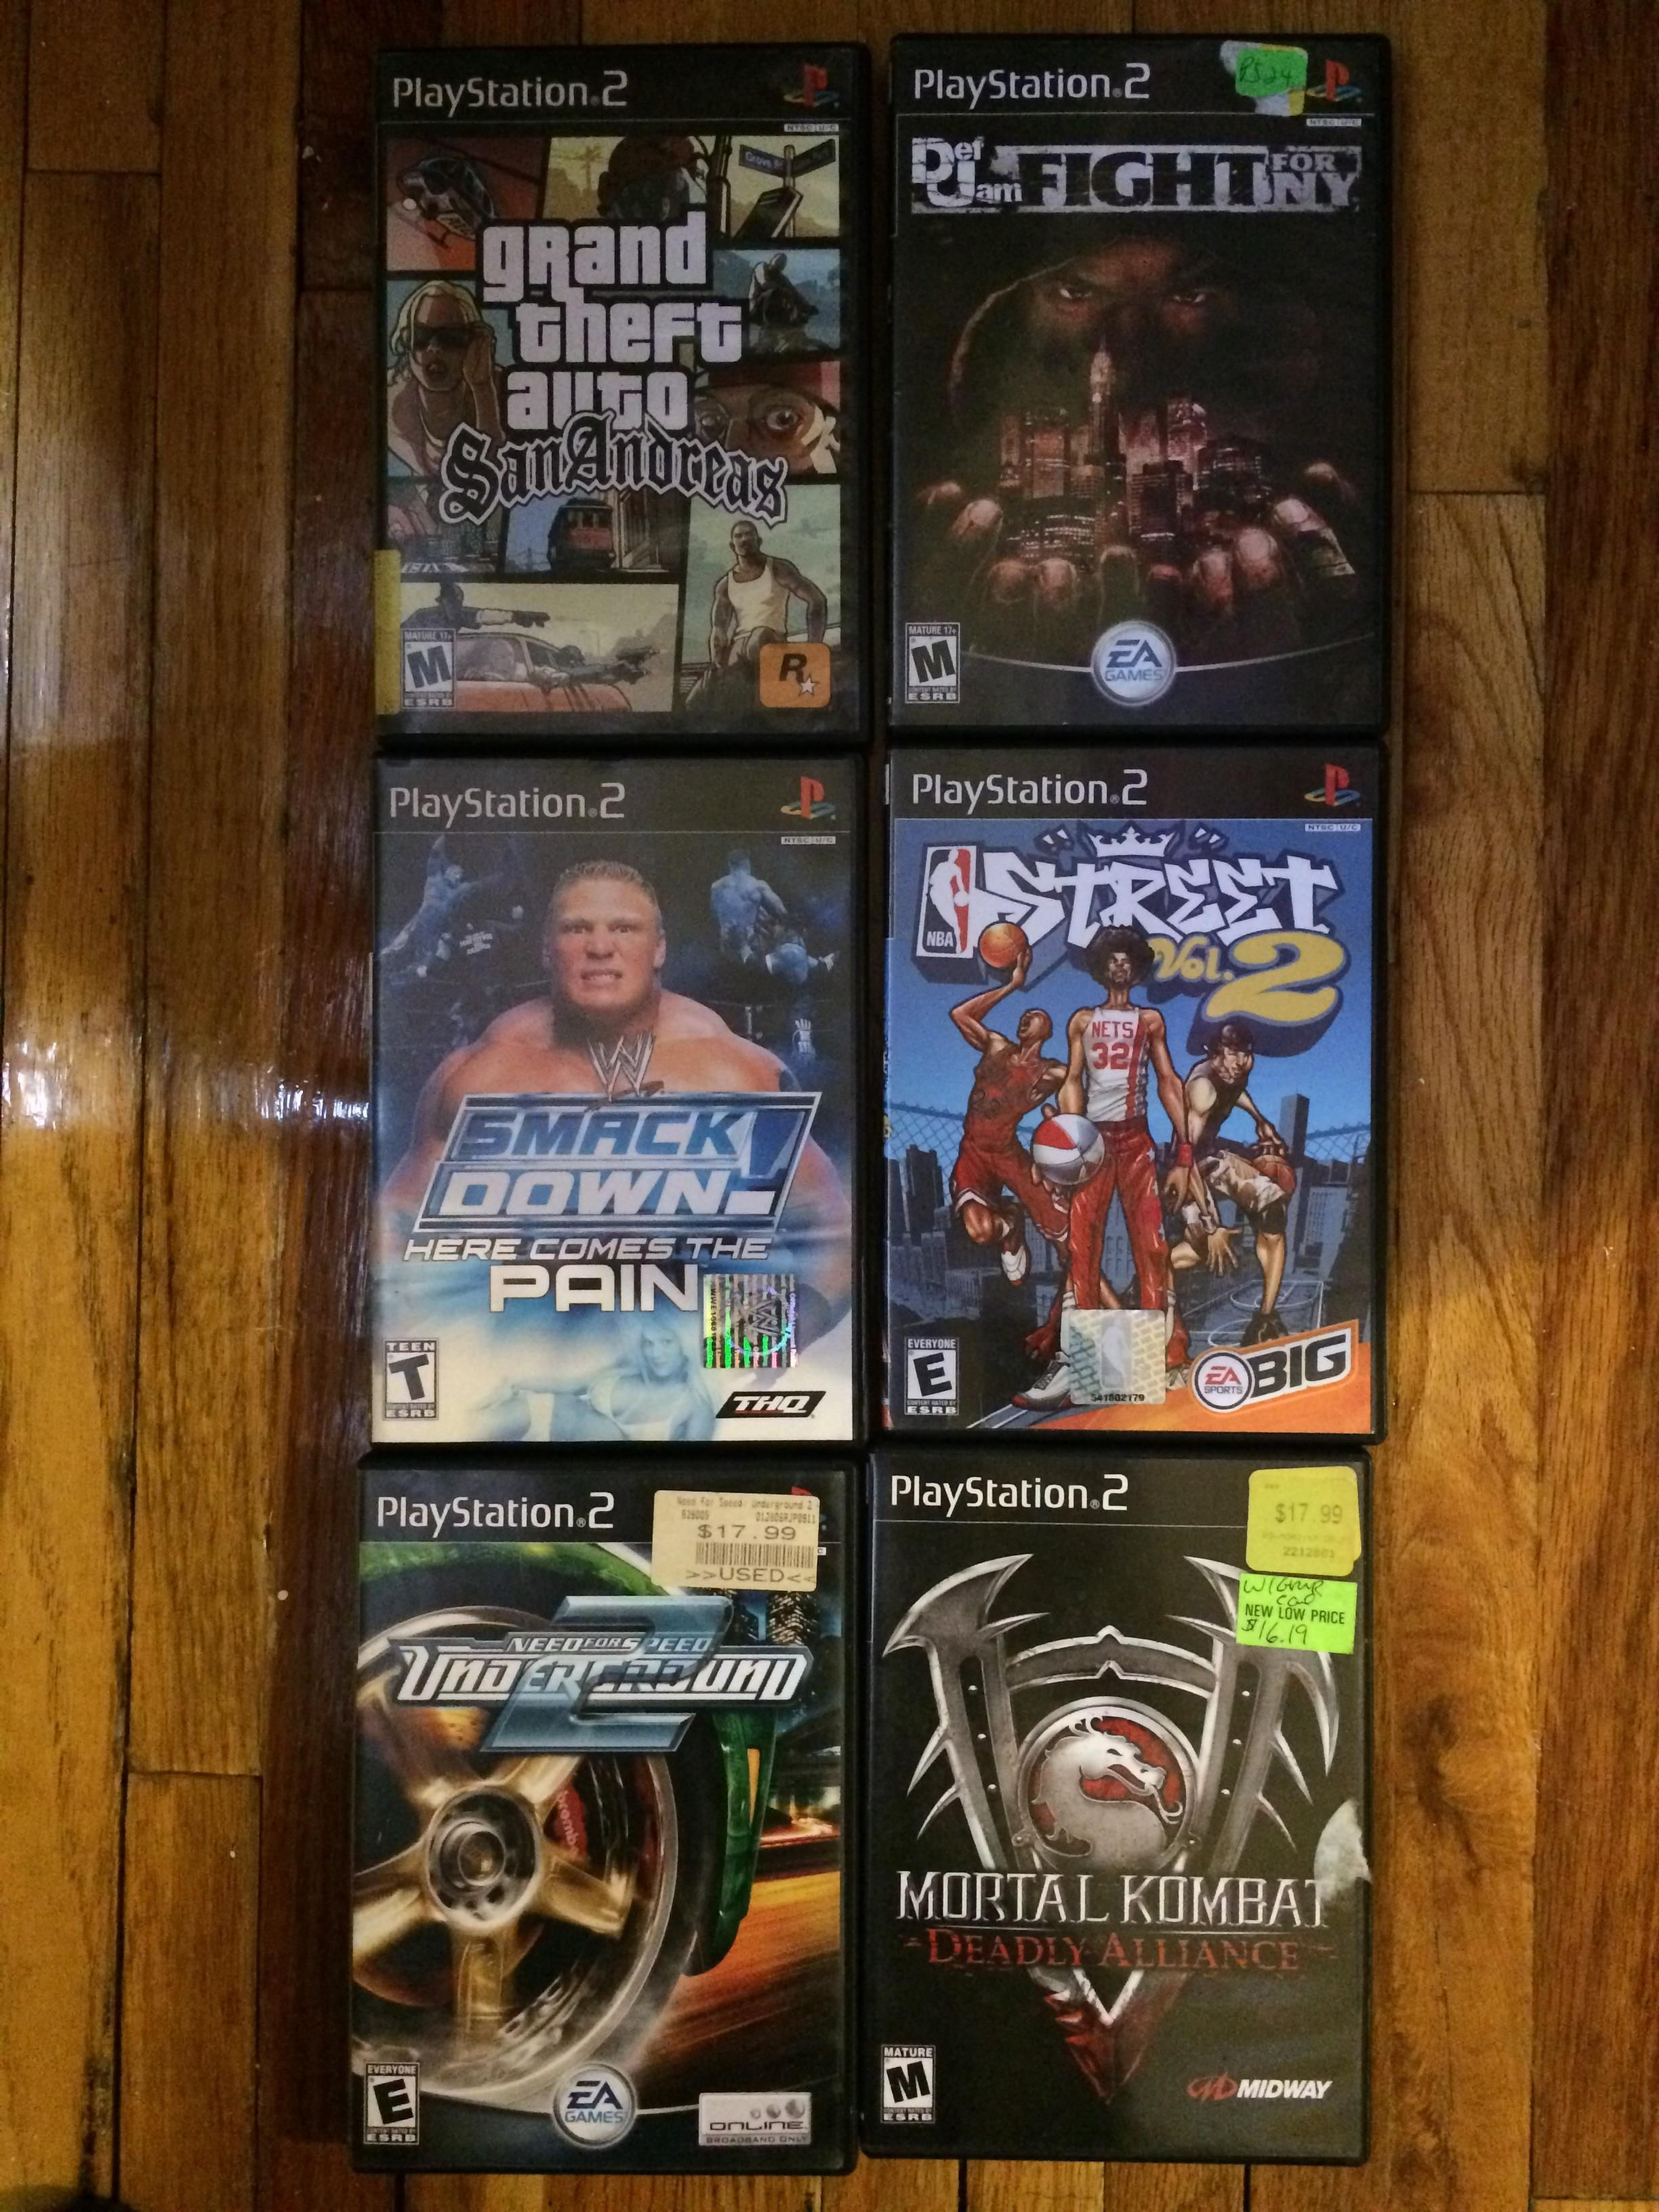 I'm 15 trying to collect ps2 classic games what else should i add to